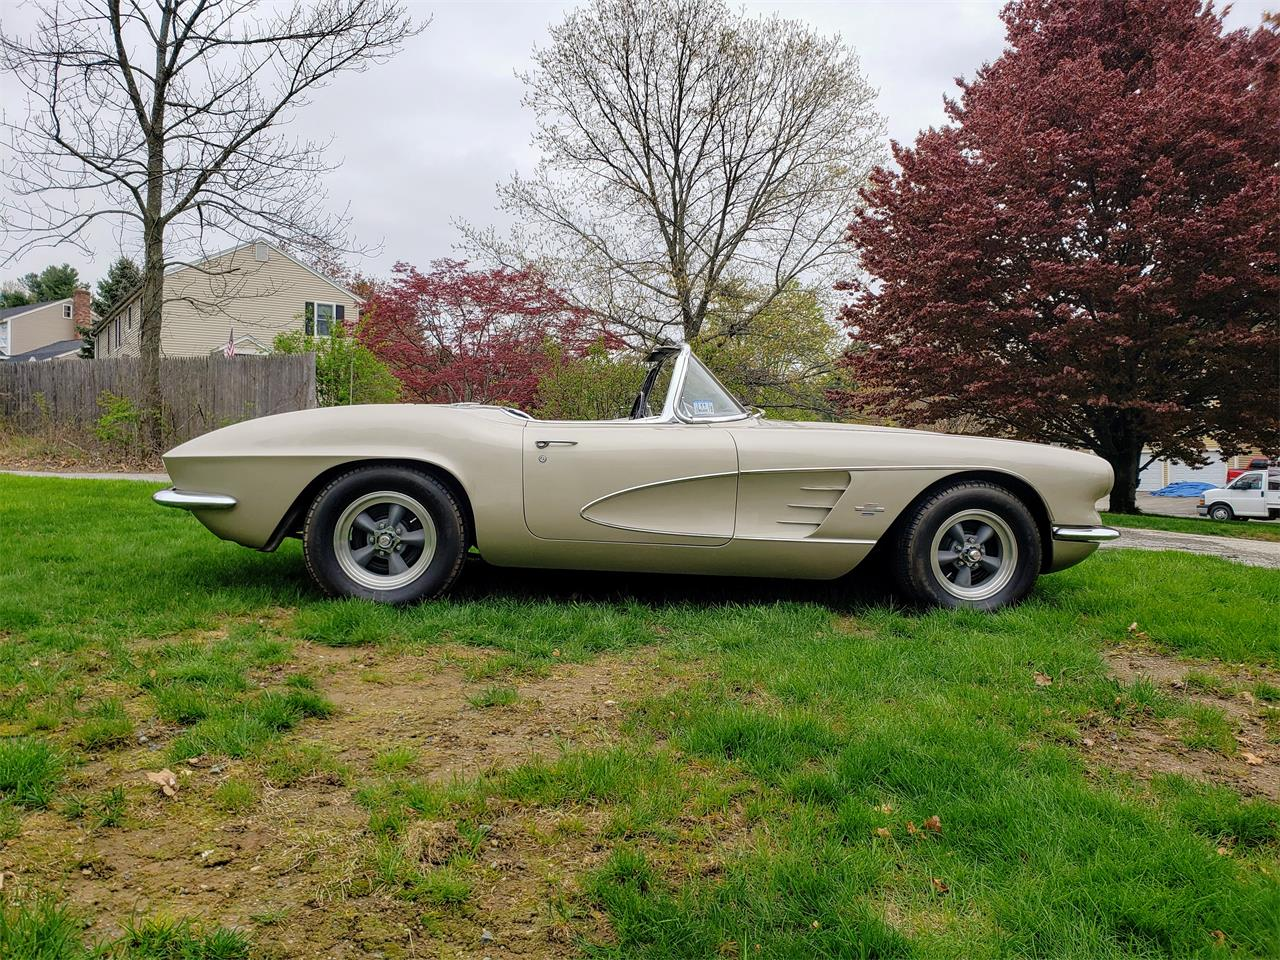 Large Picture of Classic 1961 Chevrolet Corvette located in Massachusetts - $58,000.00 Offered by a Private Seller - Q0QW